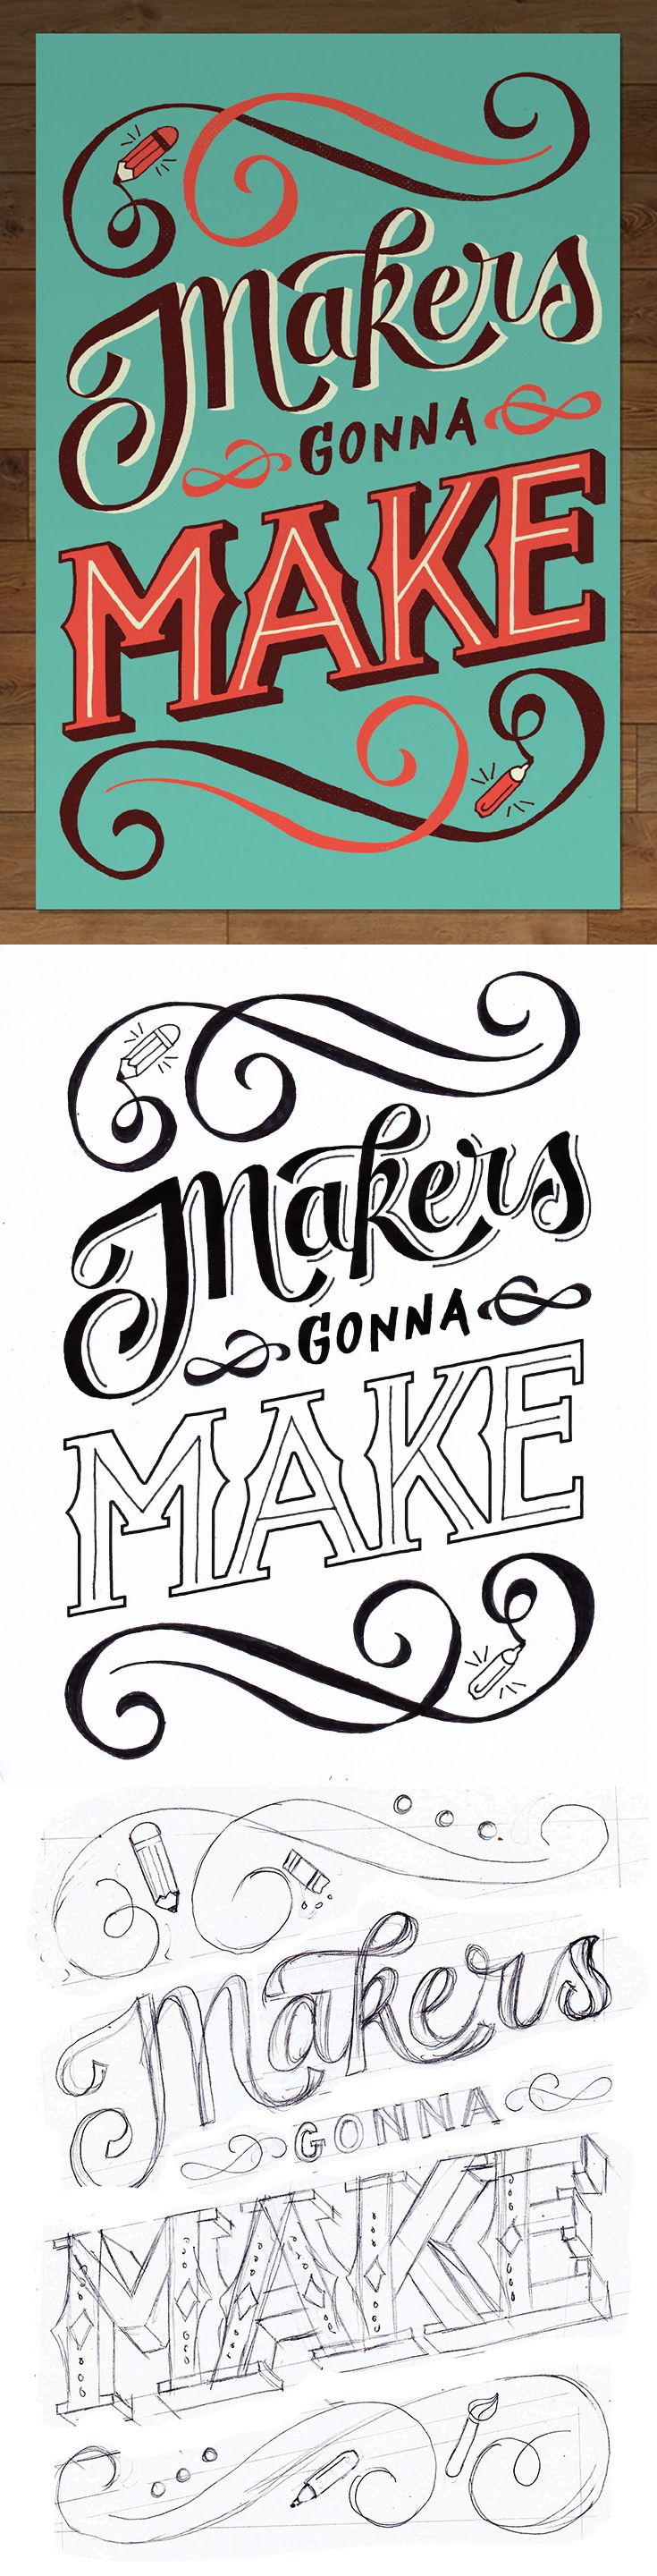 "My process for creating the hand lettered poster ""Makers Gonna Make""."